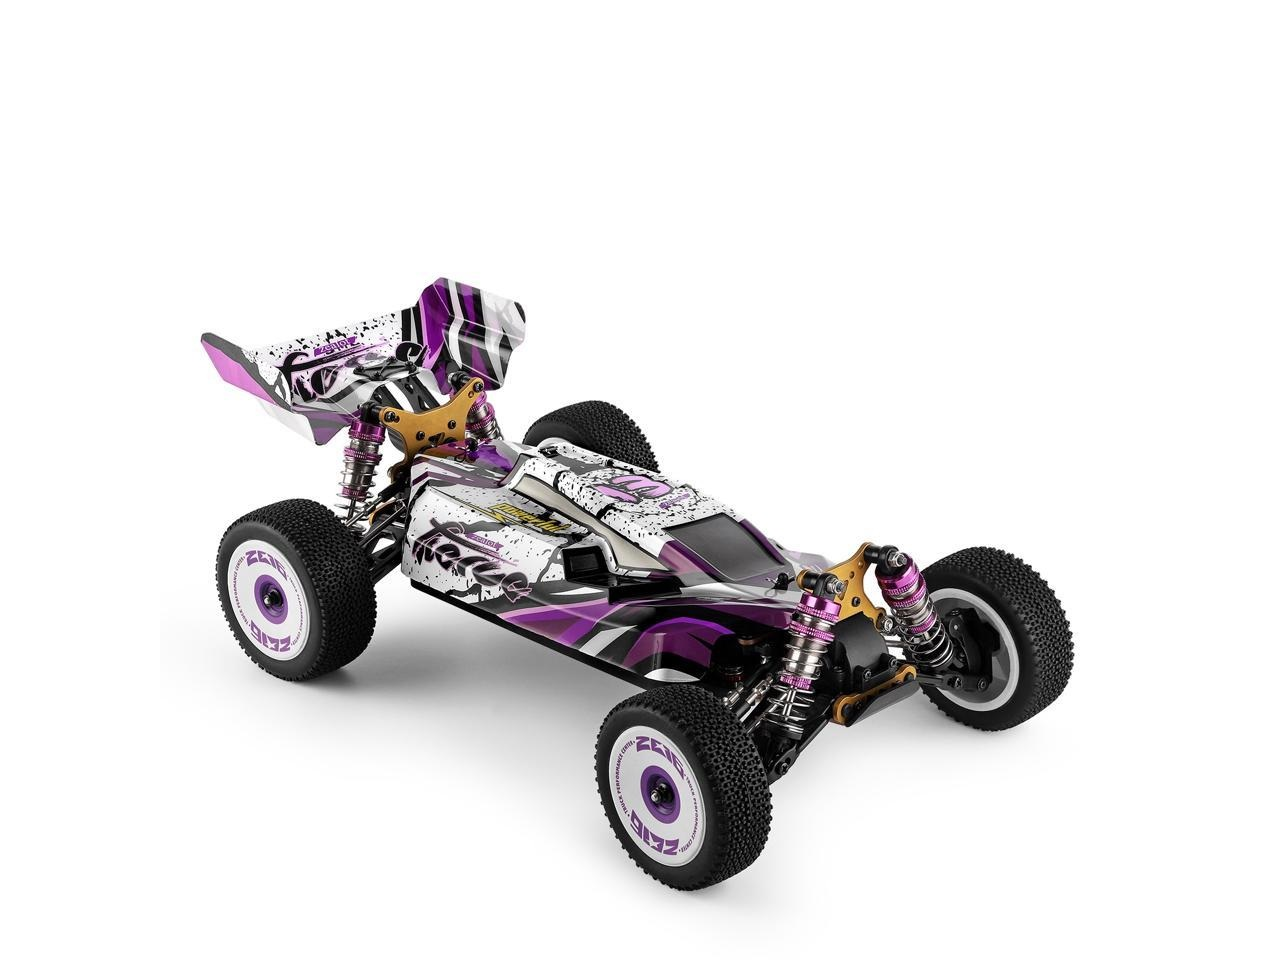 WLTOYS 124019 1/12 2.4G 4WD HIGH SPEED OFF-ROAD RC BUGGY